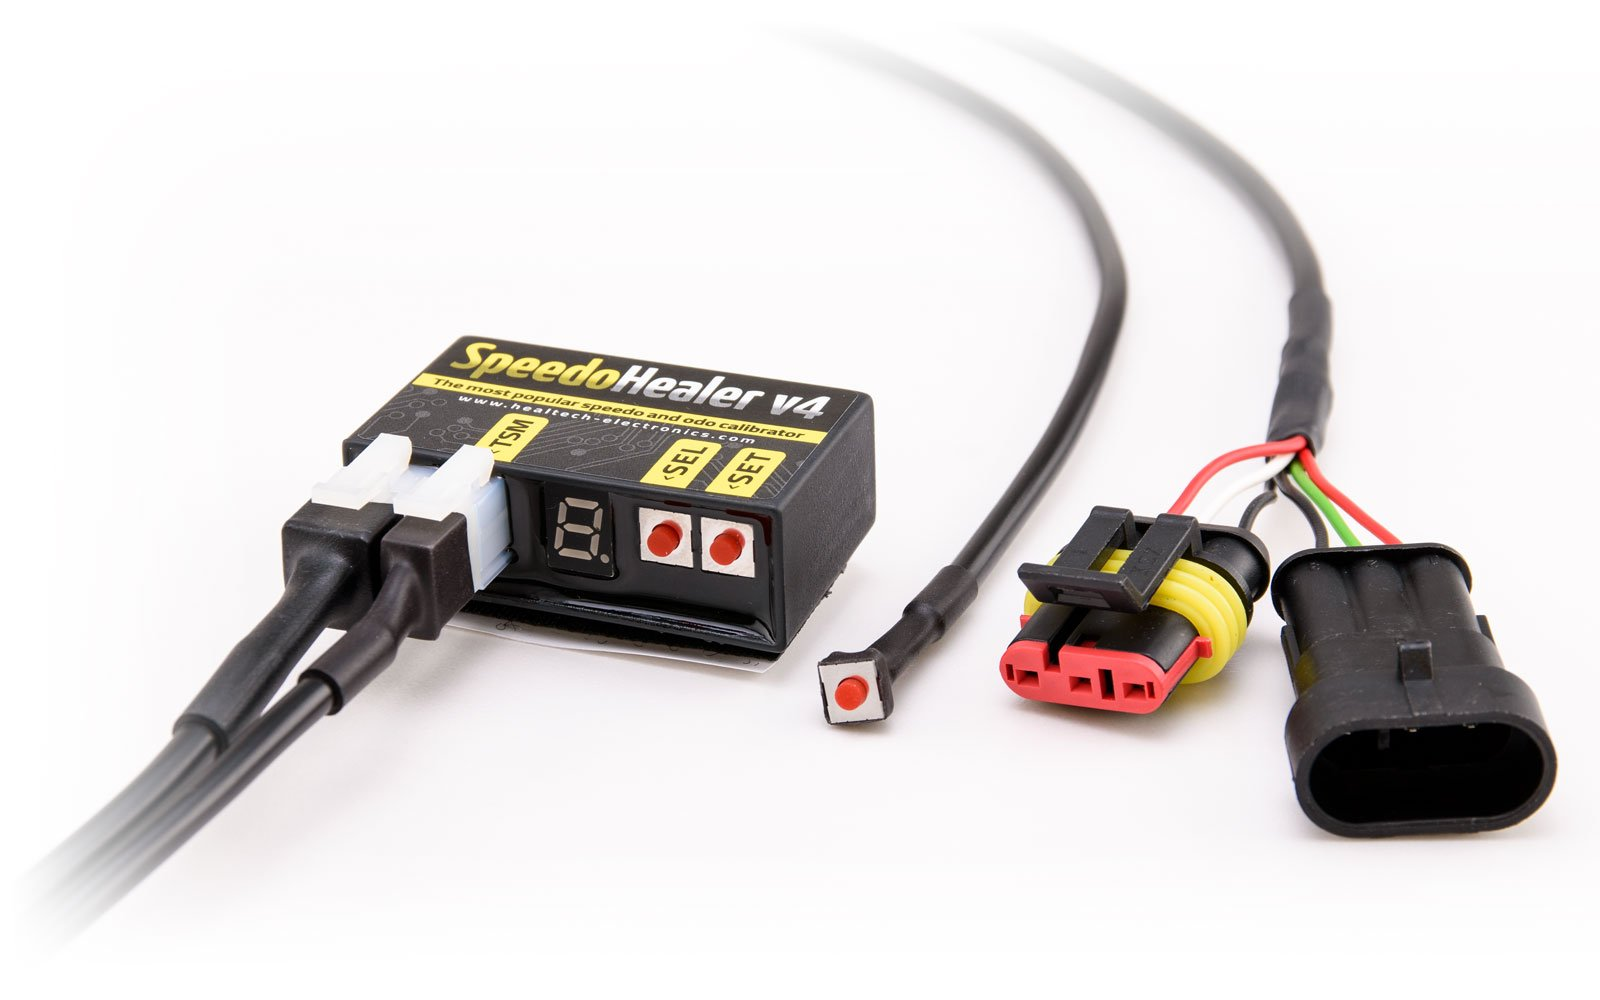 SpeedoHealer v4 unit only · SpeedoHealer v4 with harness kit ...